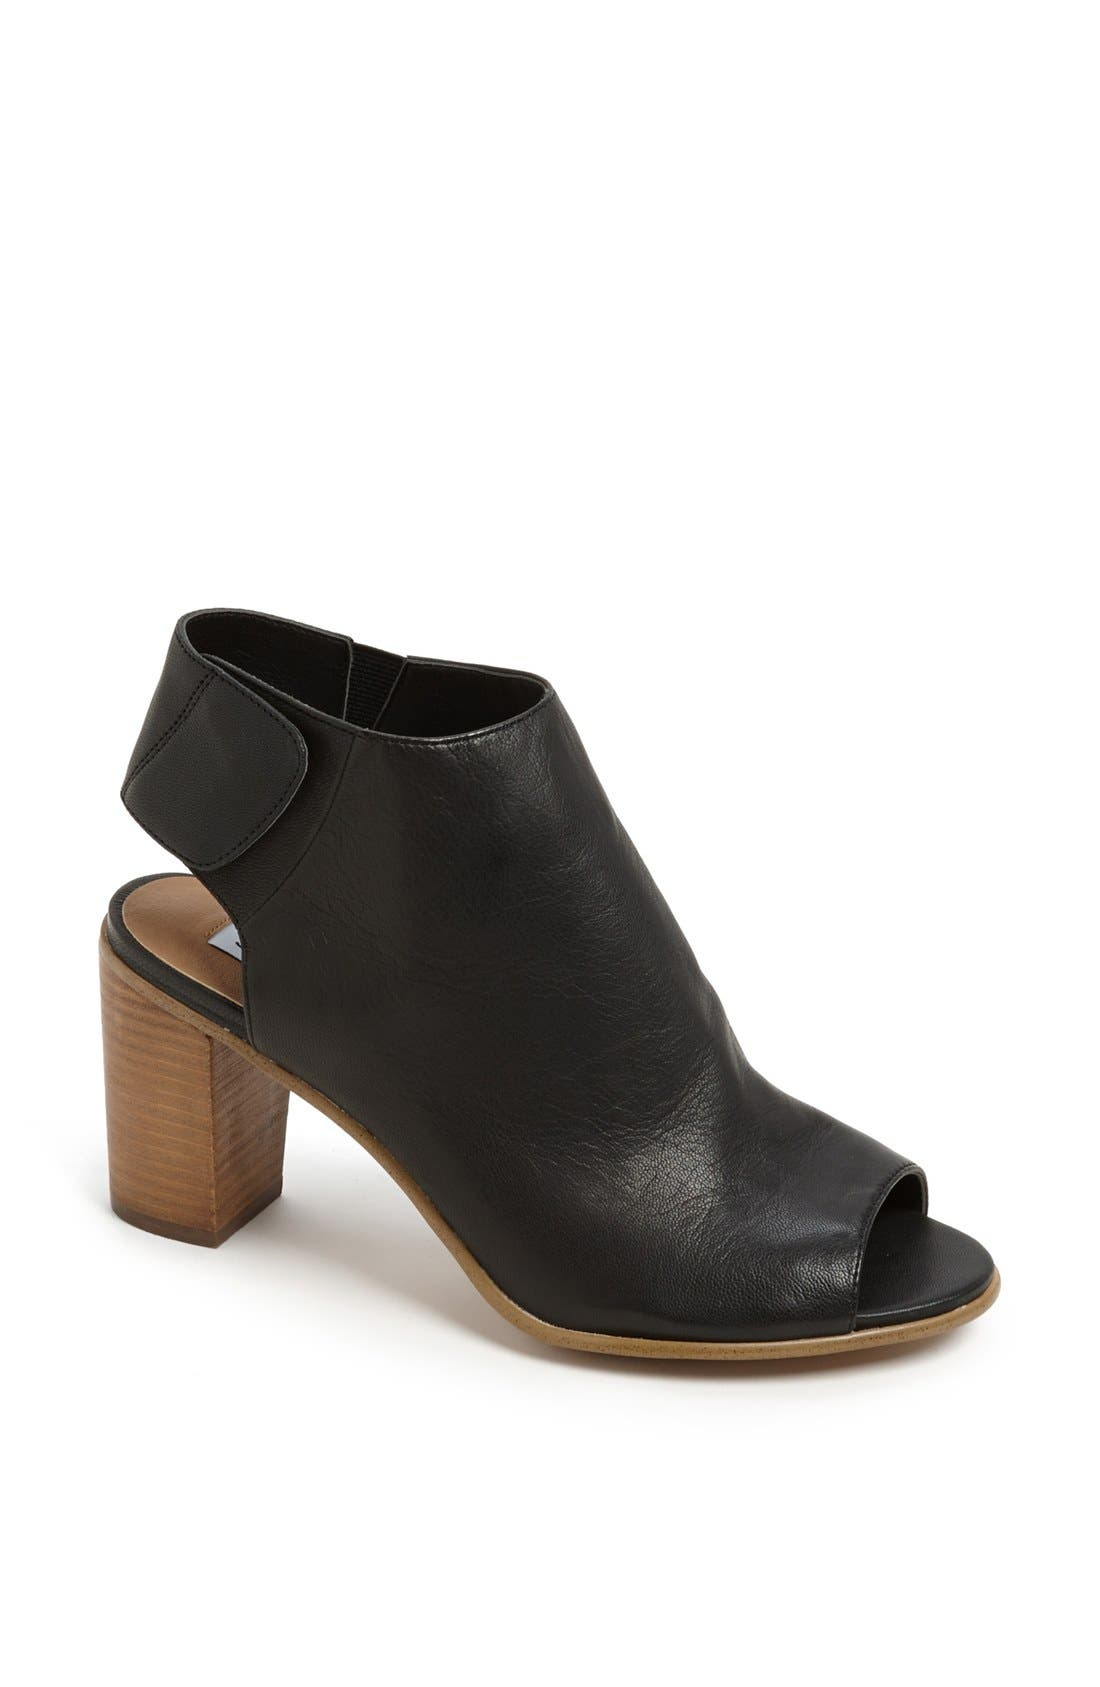 Alternate Image 1 Selected - Steve Madden 'Nonstp' Bootie